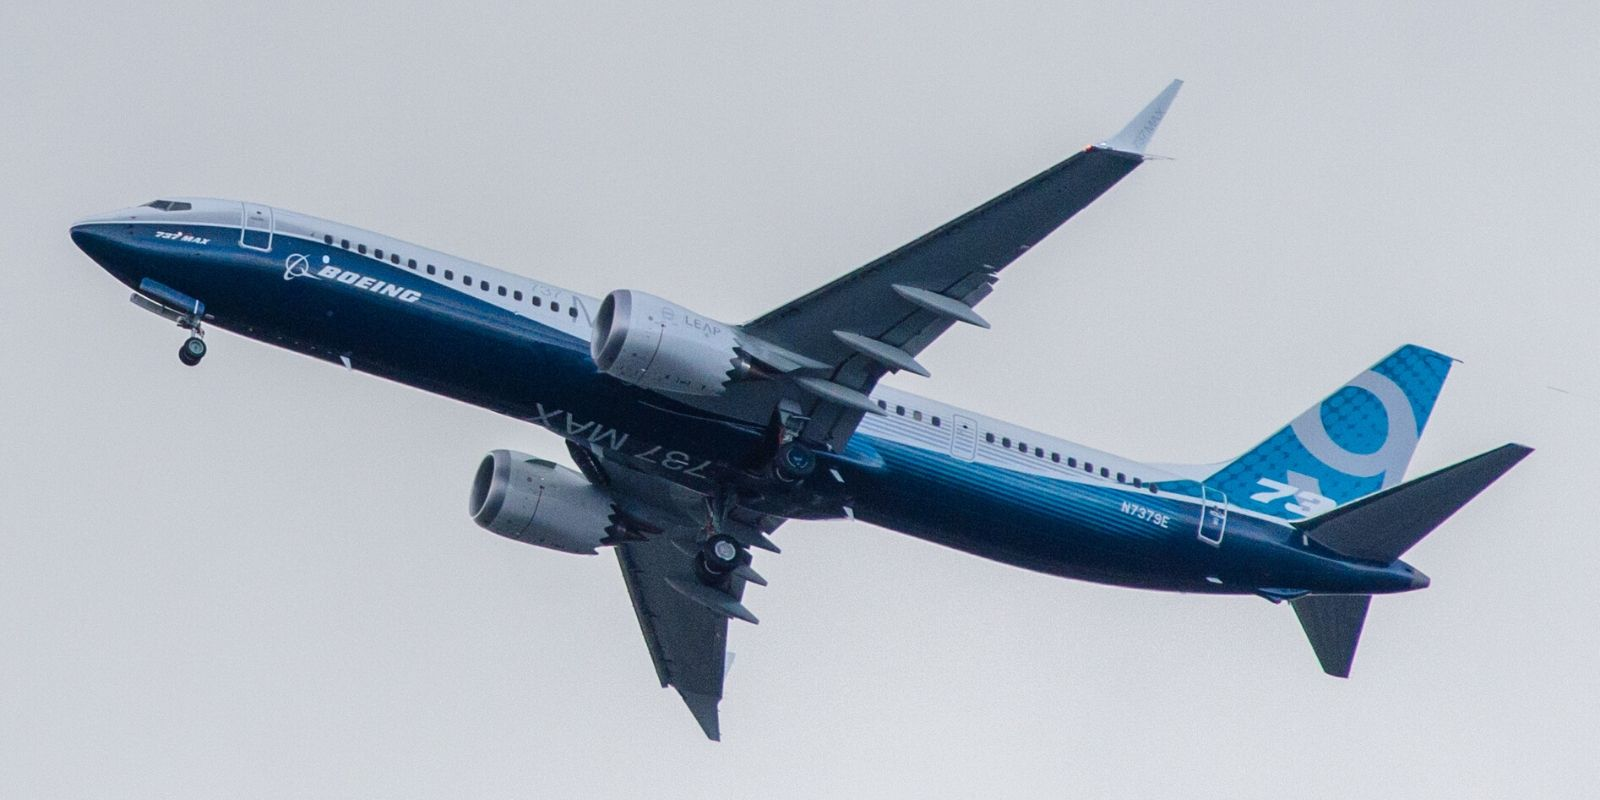 Boeing will suspend 737 Max production